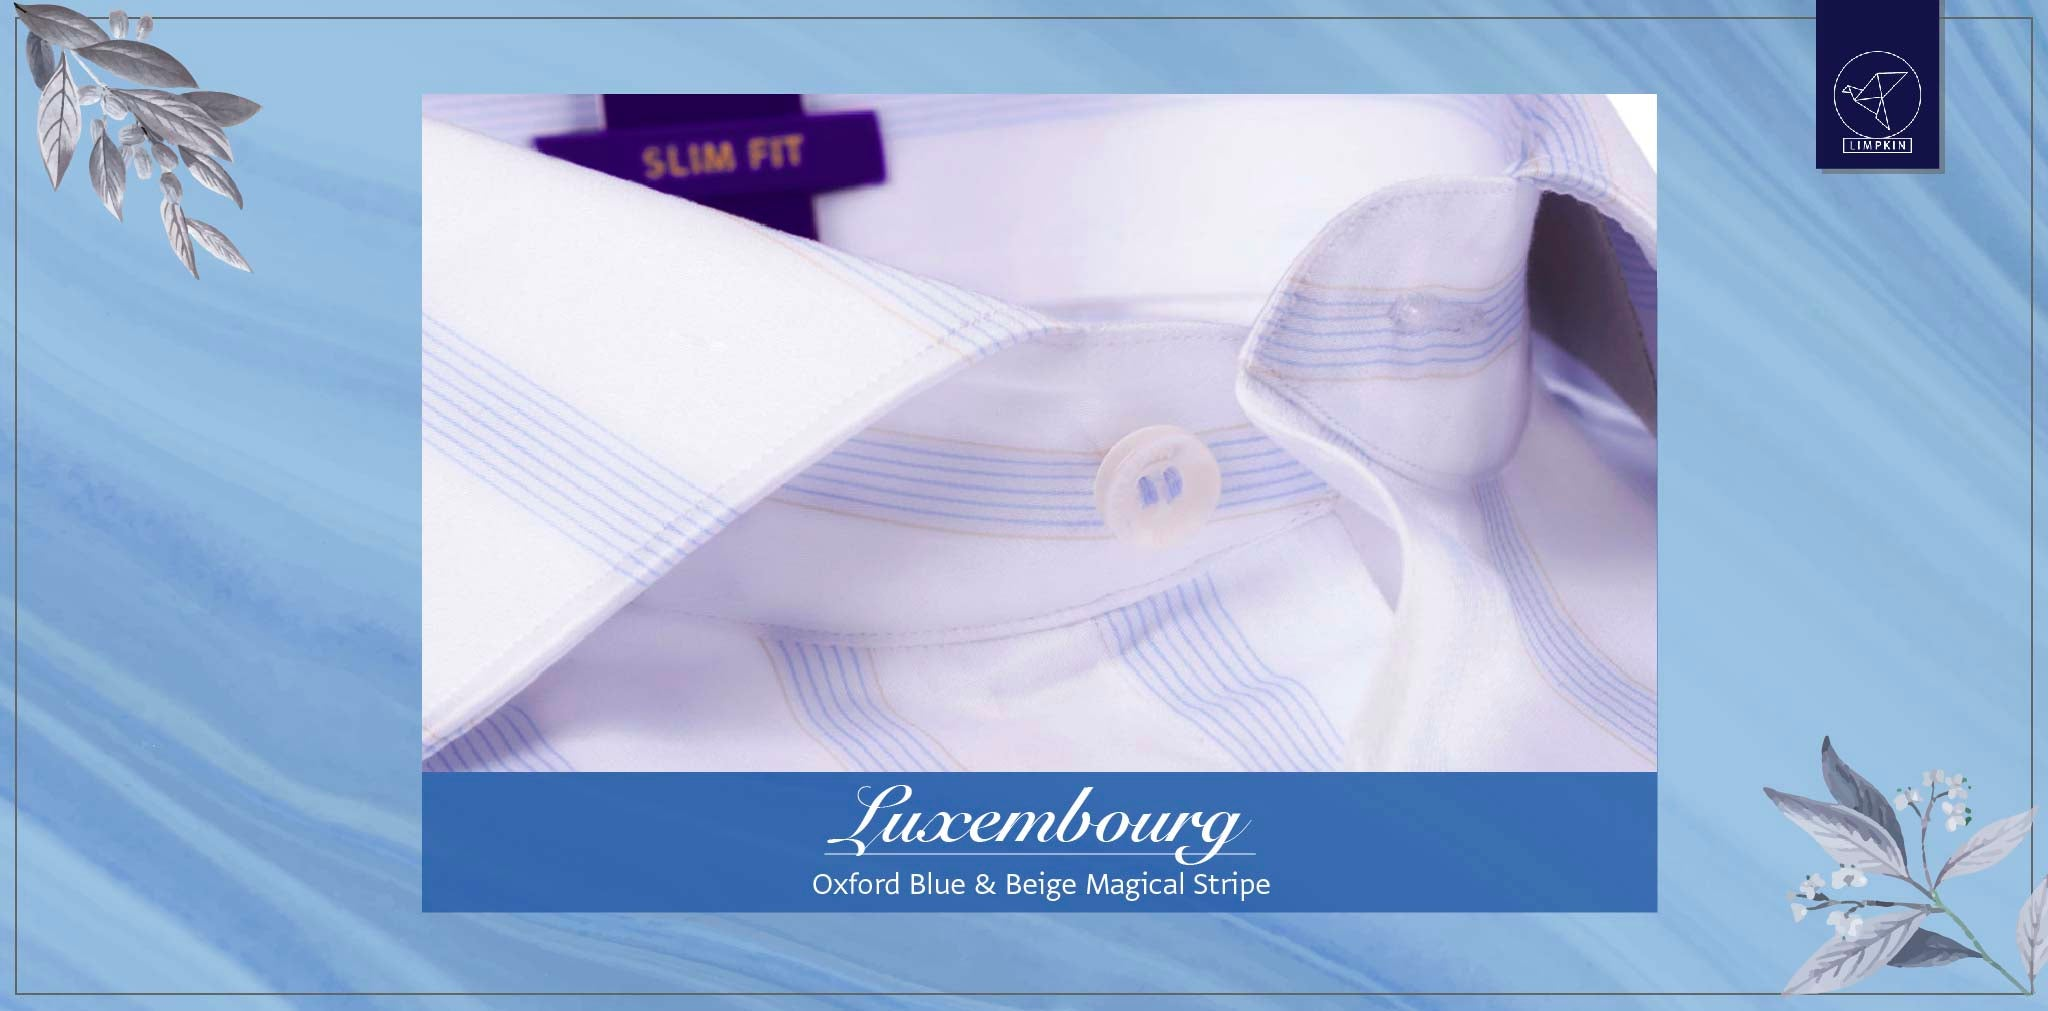 Luxembourg- Oxford Blue & Beige Magical Stripe- 2 Ply Pure Egyptian Giza Cotton- Delivery from 30th Nov - Banner